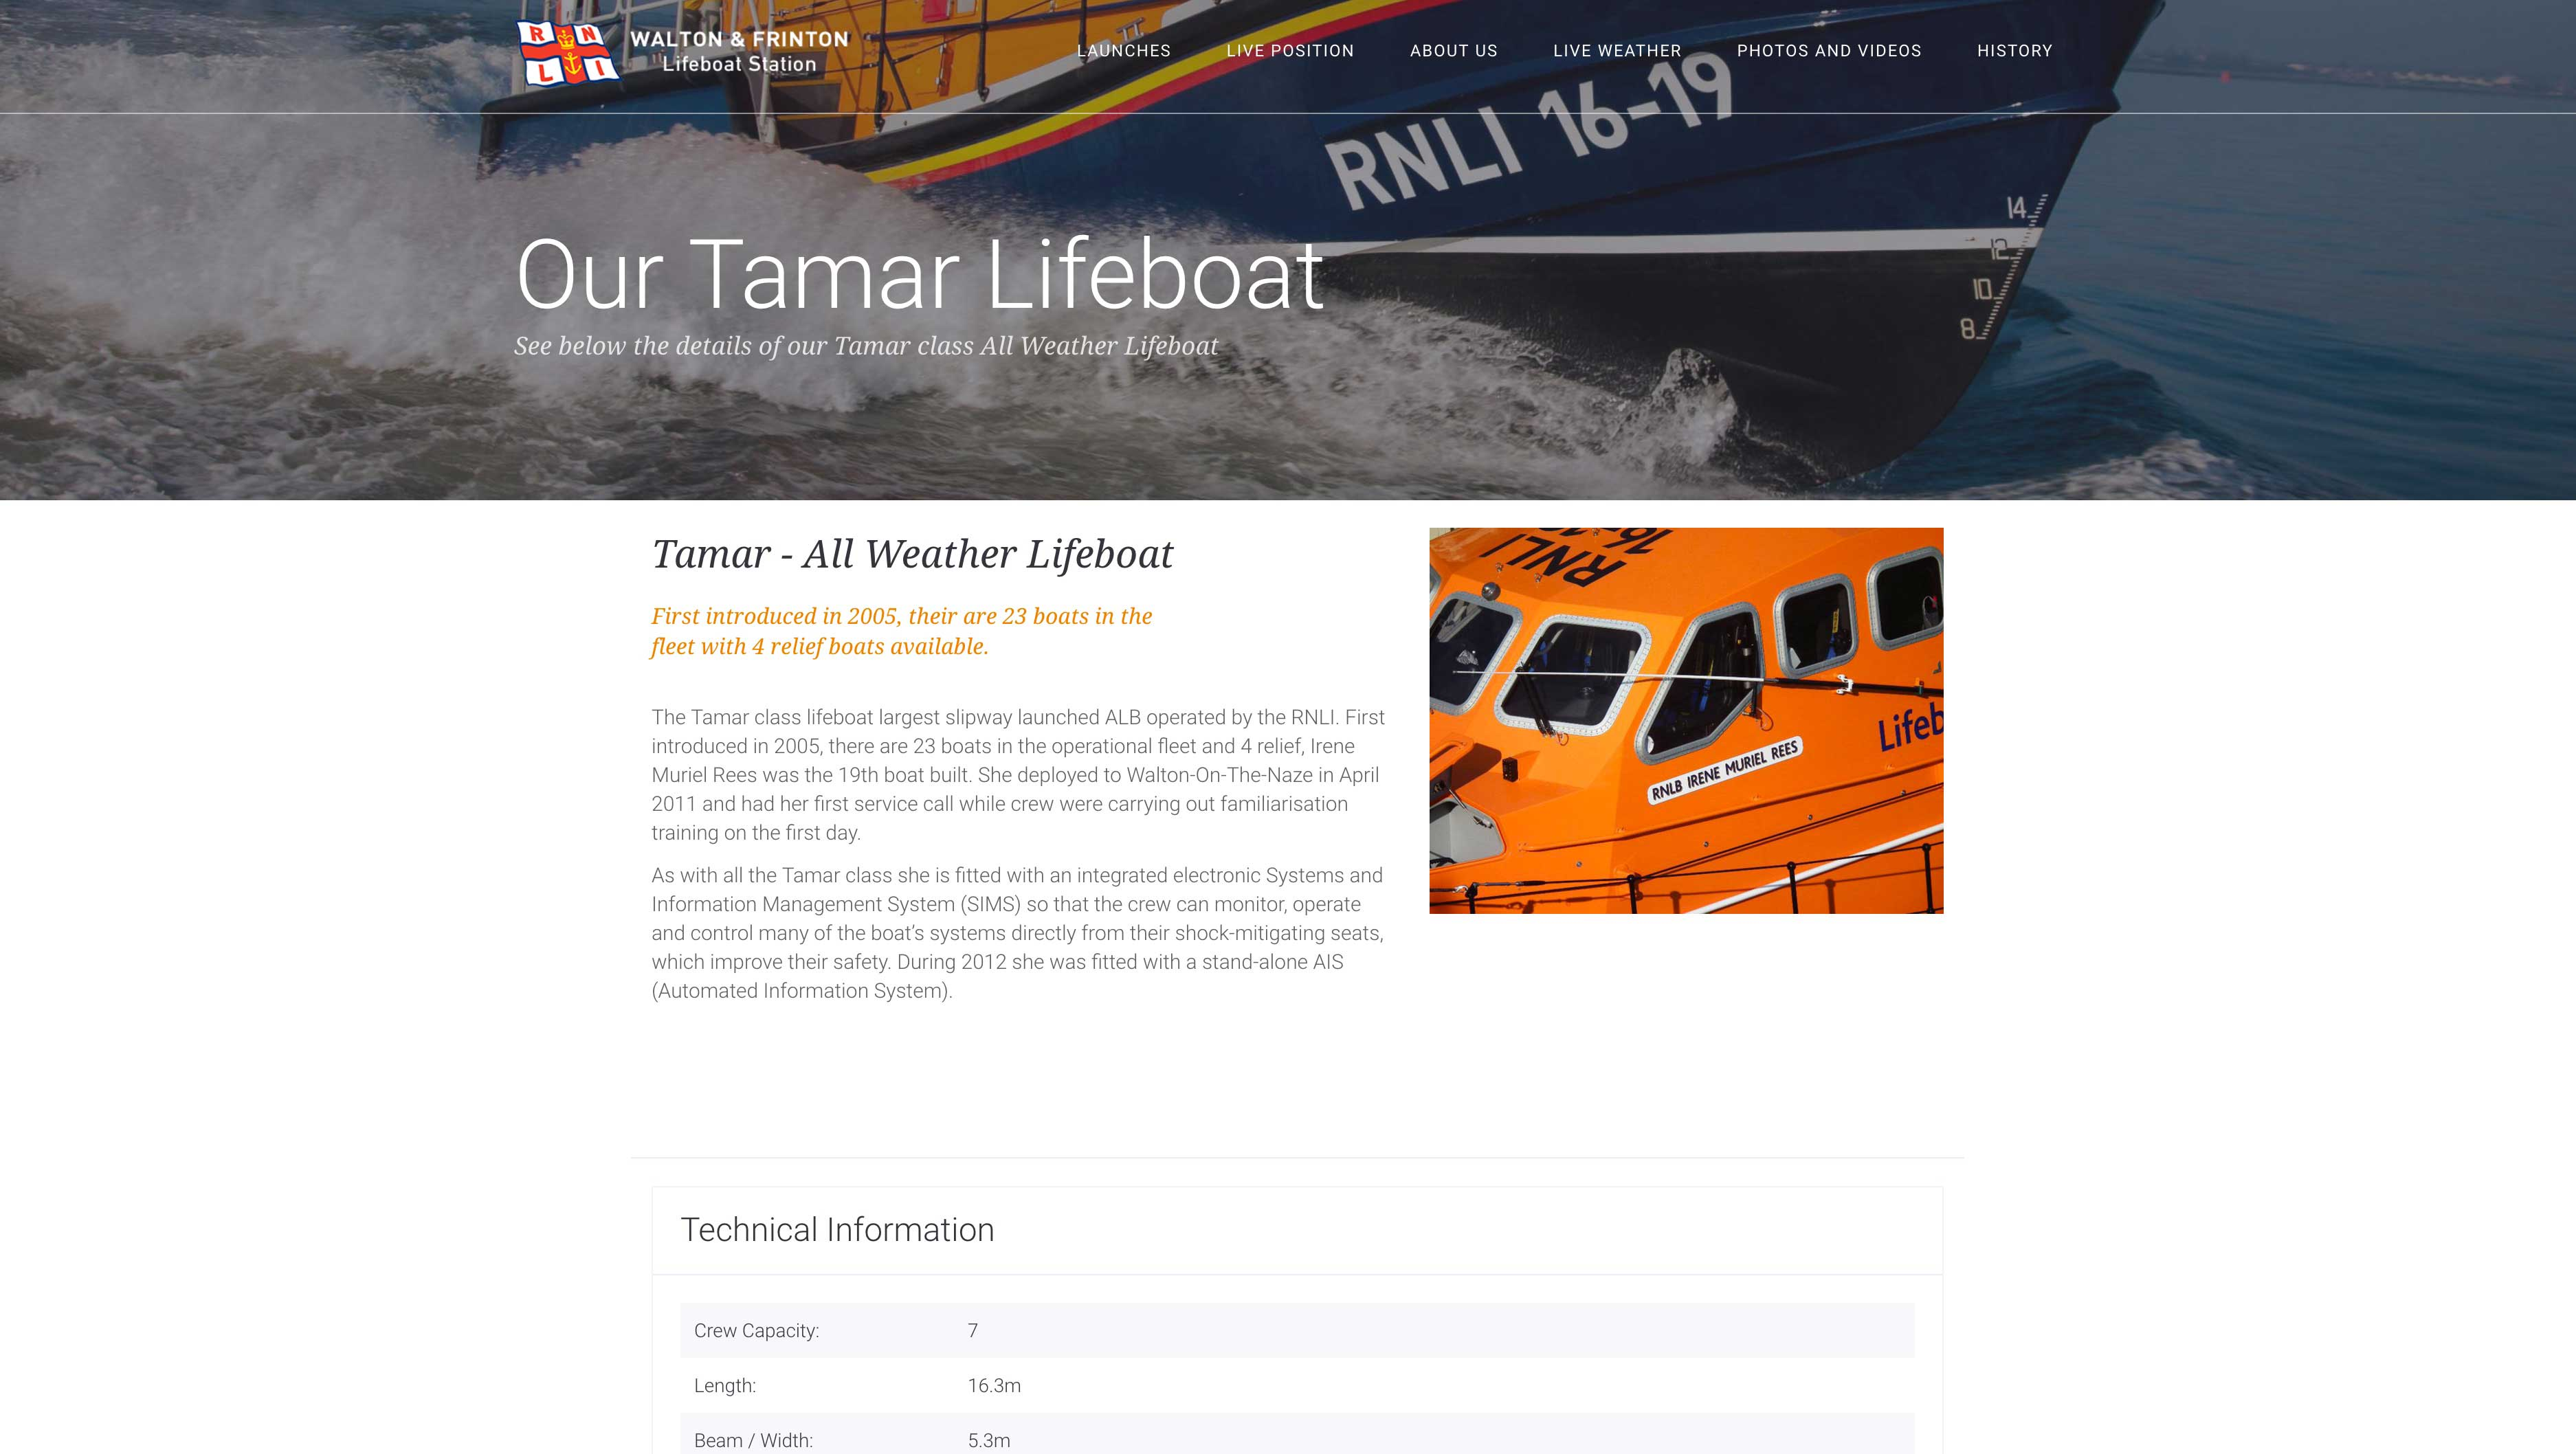 Walton & Frinton Lifeboat Website - Redesigned and engineering from the ground up for a Rich mobile experience ans well as emmersive desktop experience.